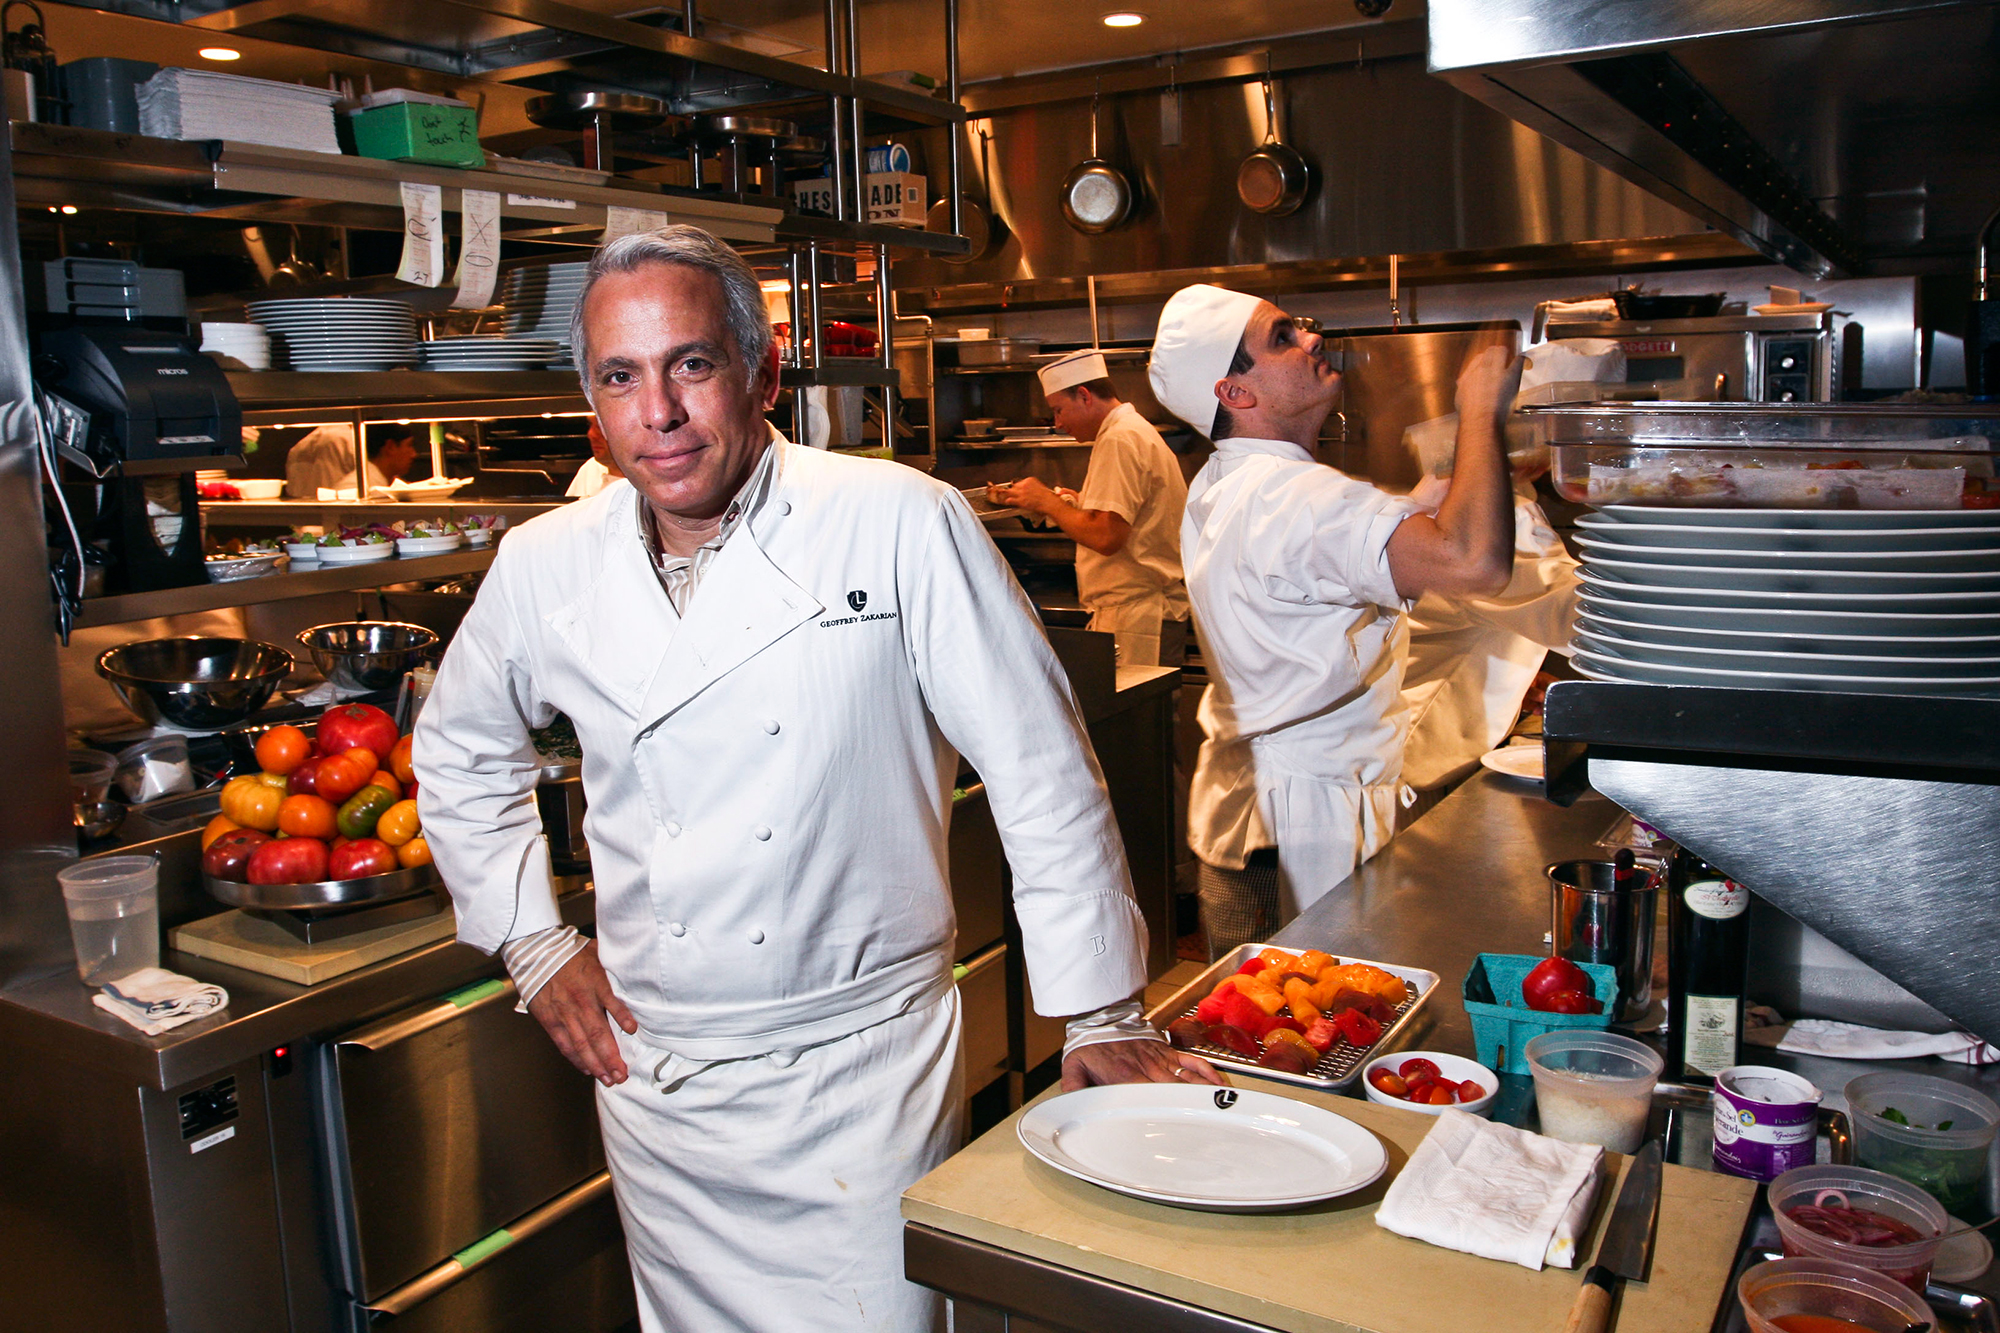 Hottest Male Chefs: Curtis Stone, Antoni Porowski and More - A presence on the celebrity chef scene for about 30 years, there's no culinary expert who makes gray hair and glasses look better than Zakarian, 59. What's more?